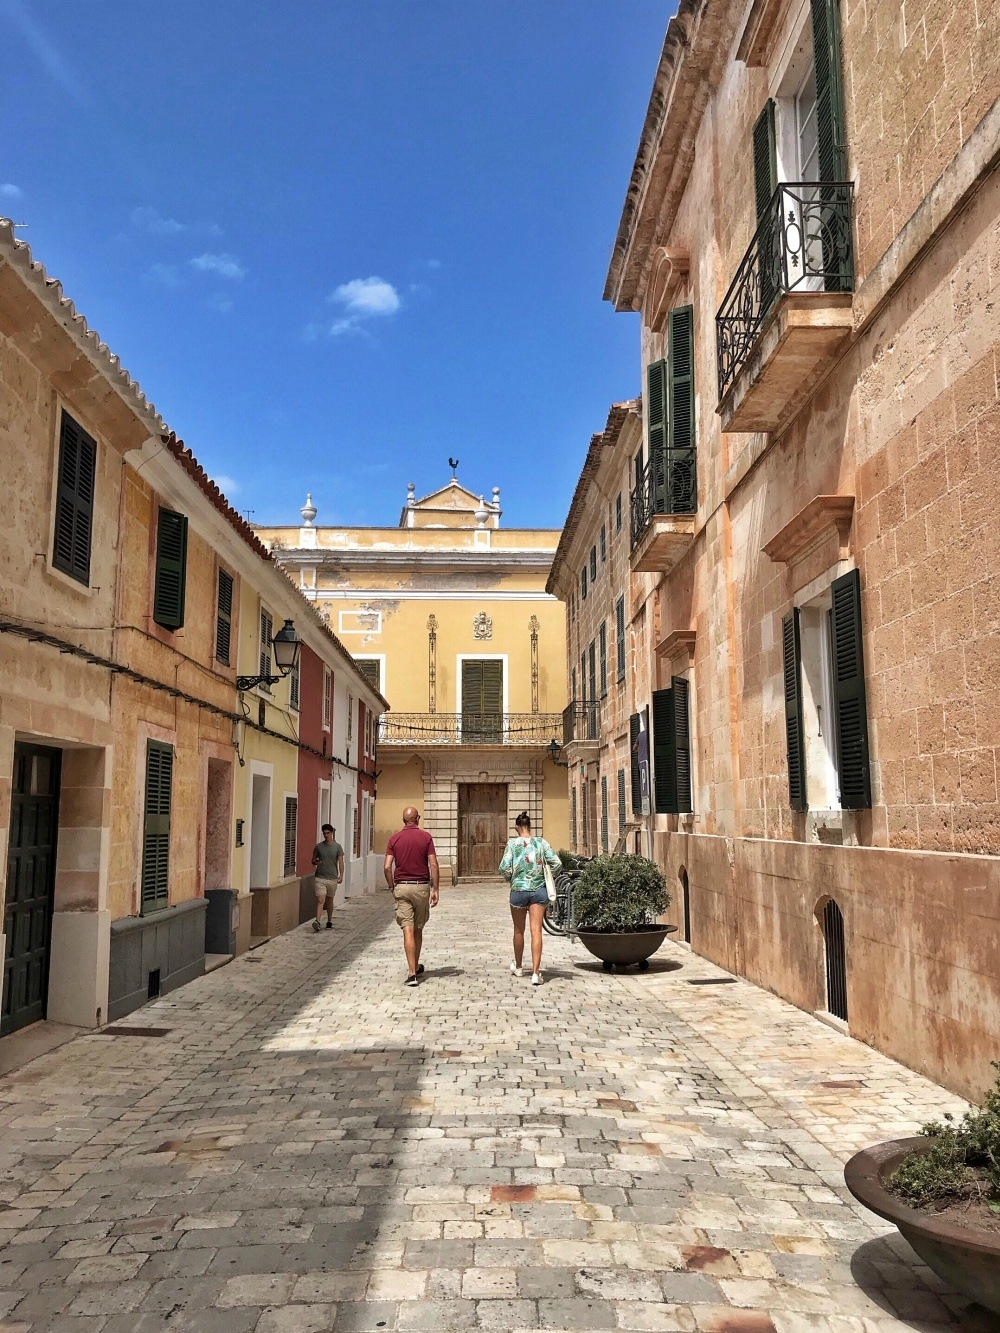 Streets in Ciutadella Menorca Spain Photo Heatheronhertravels.com